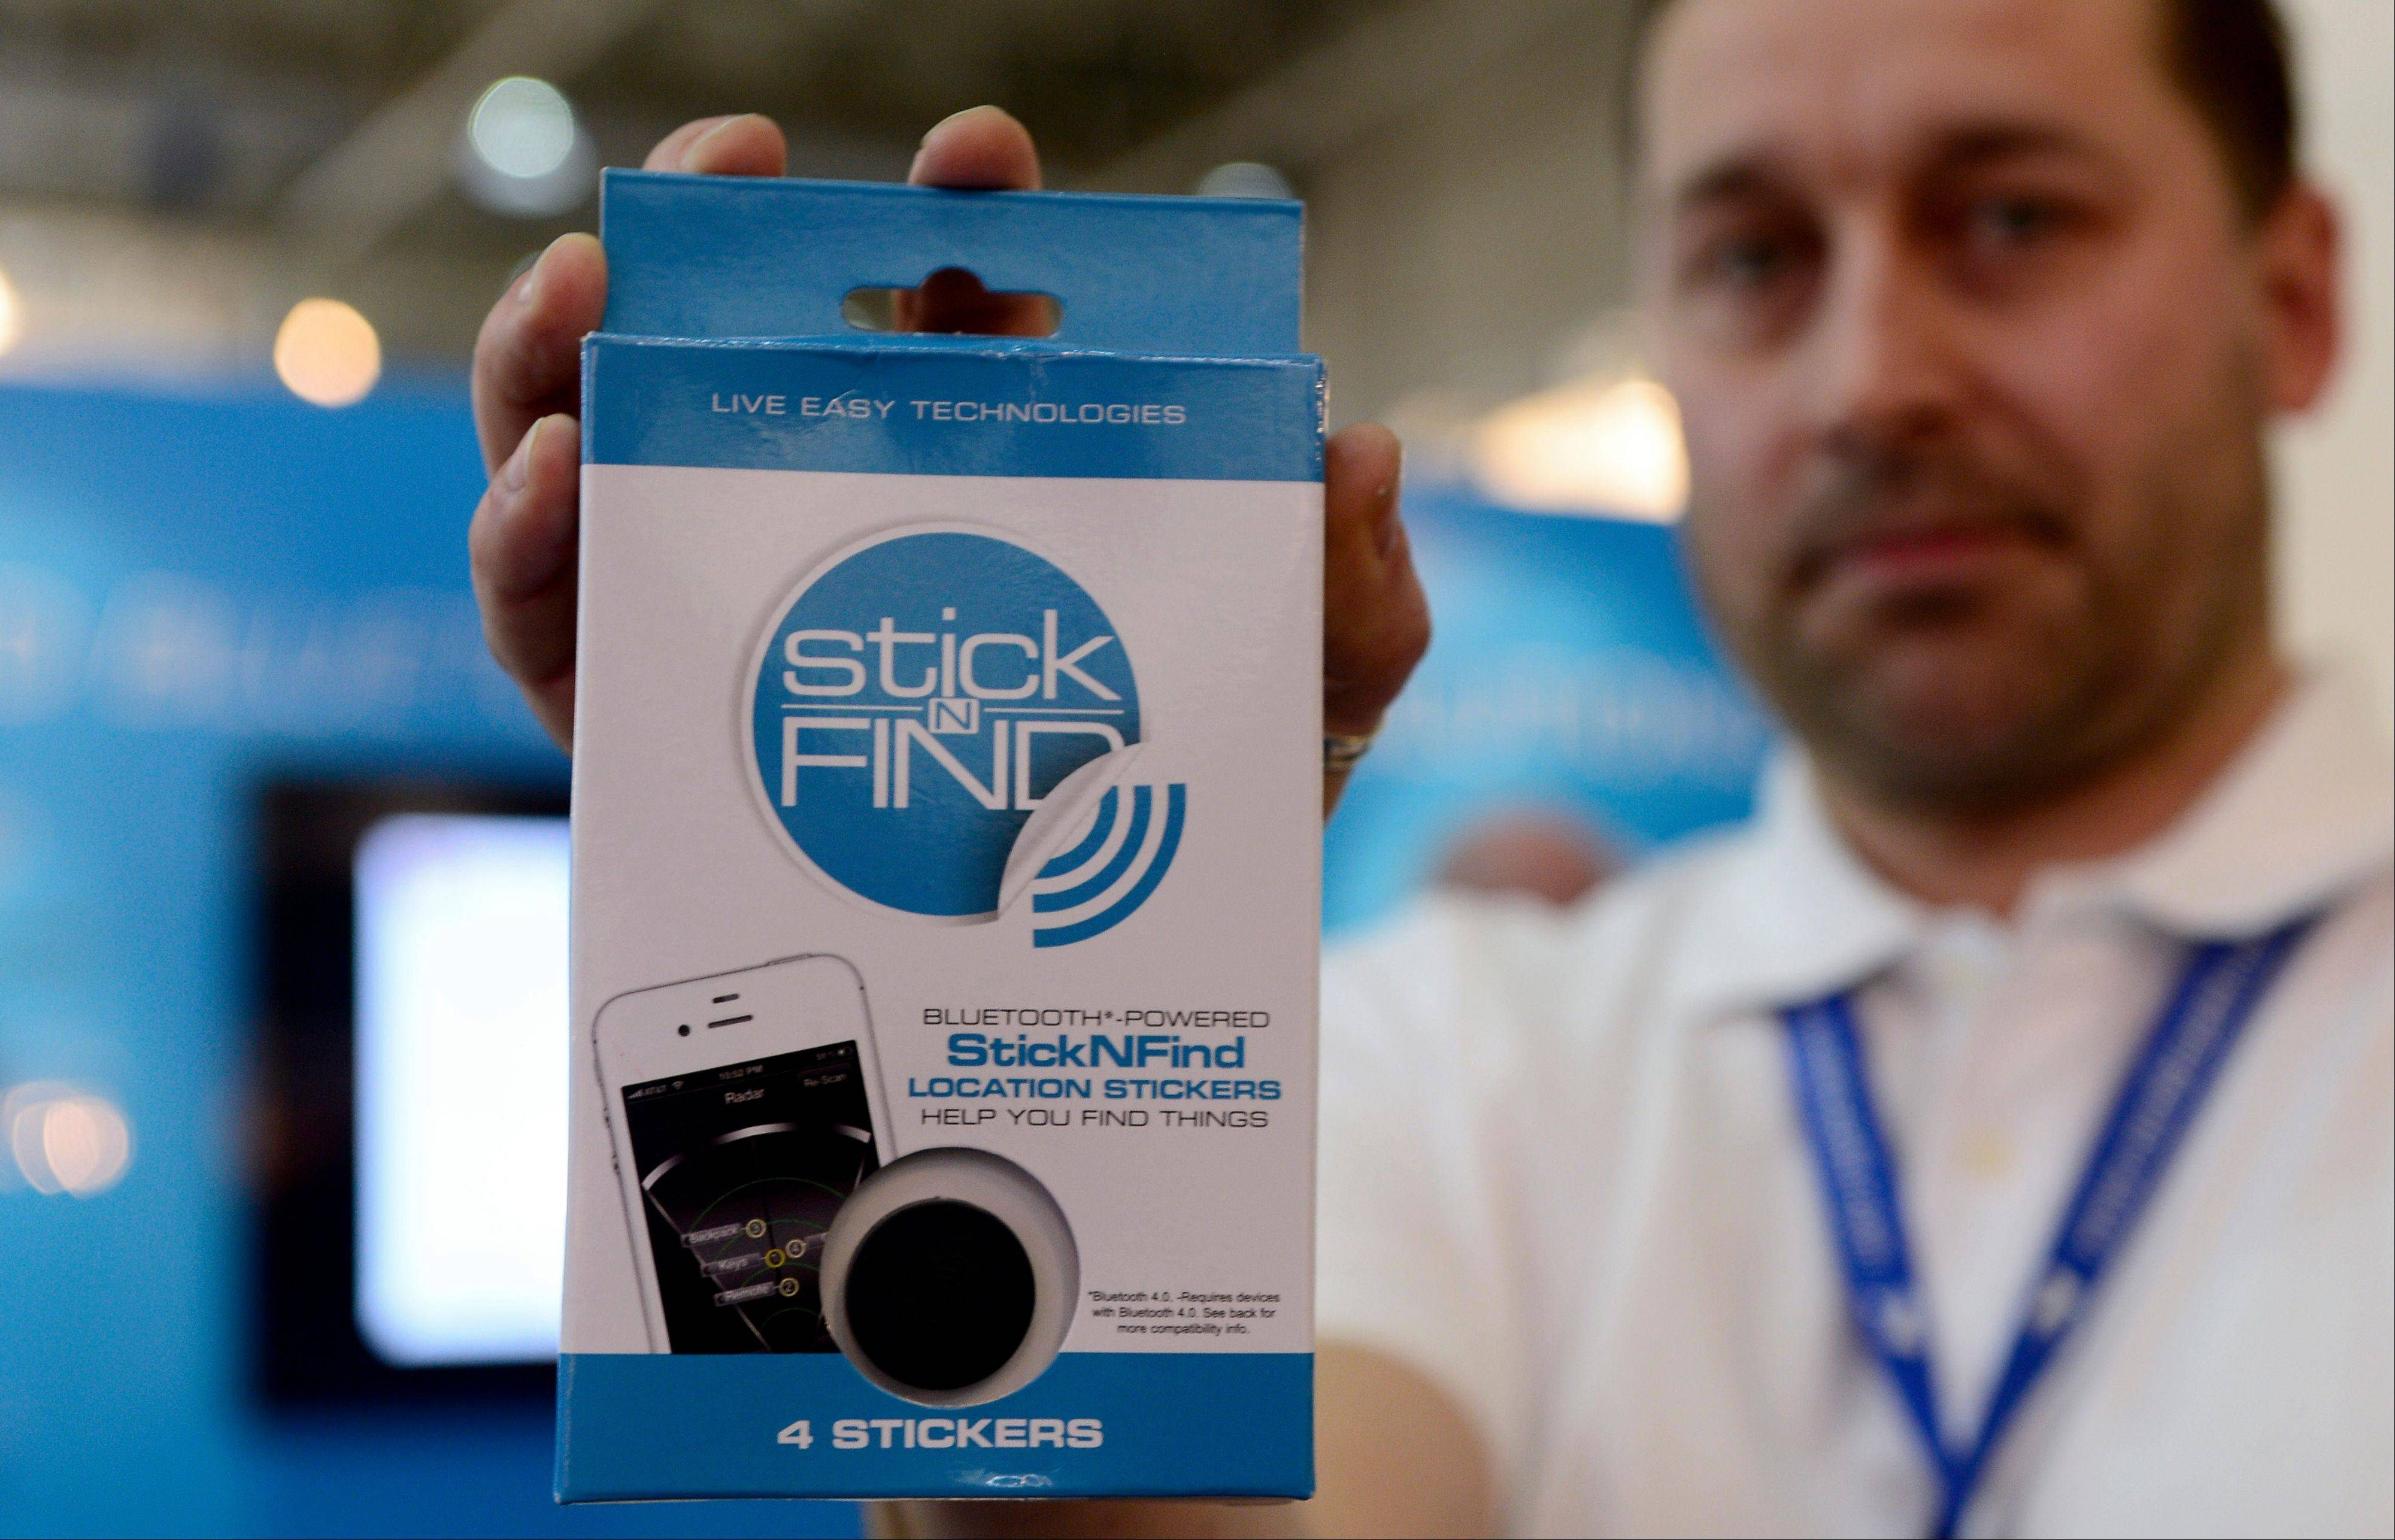 Stick-N-Find Technologies, wants to give people a way to find things, by using a new radio technology known as Bluetooth Low Energy, which drastically reduces the power consumption of a transmitting device.